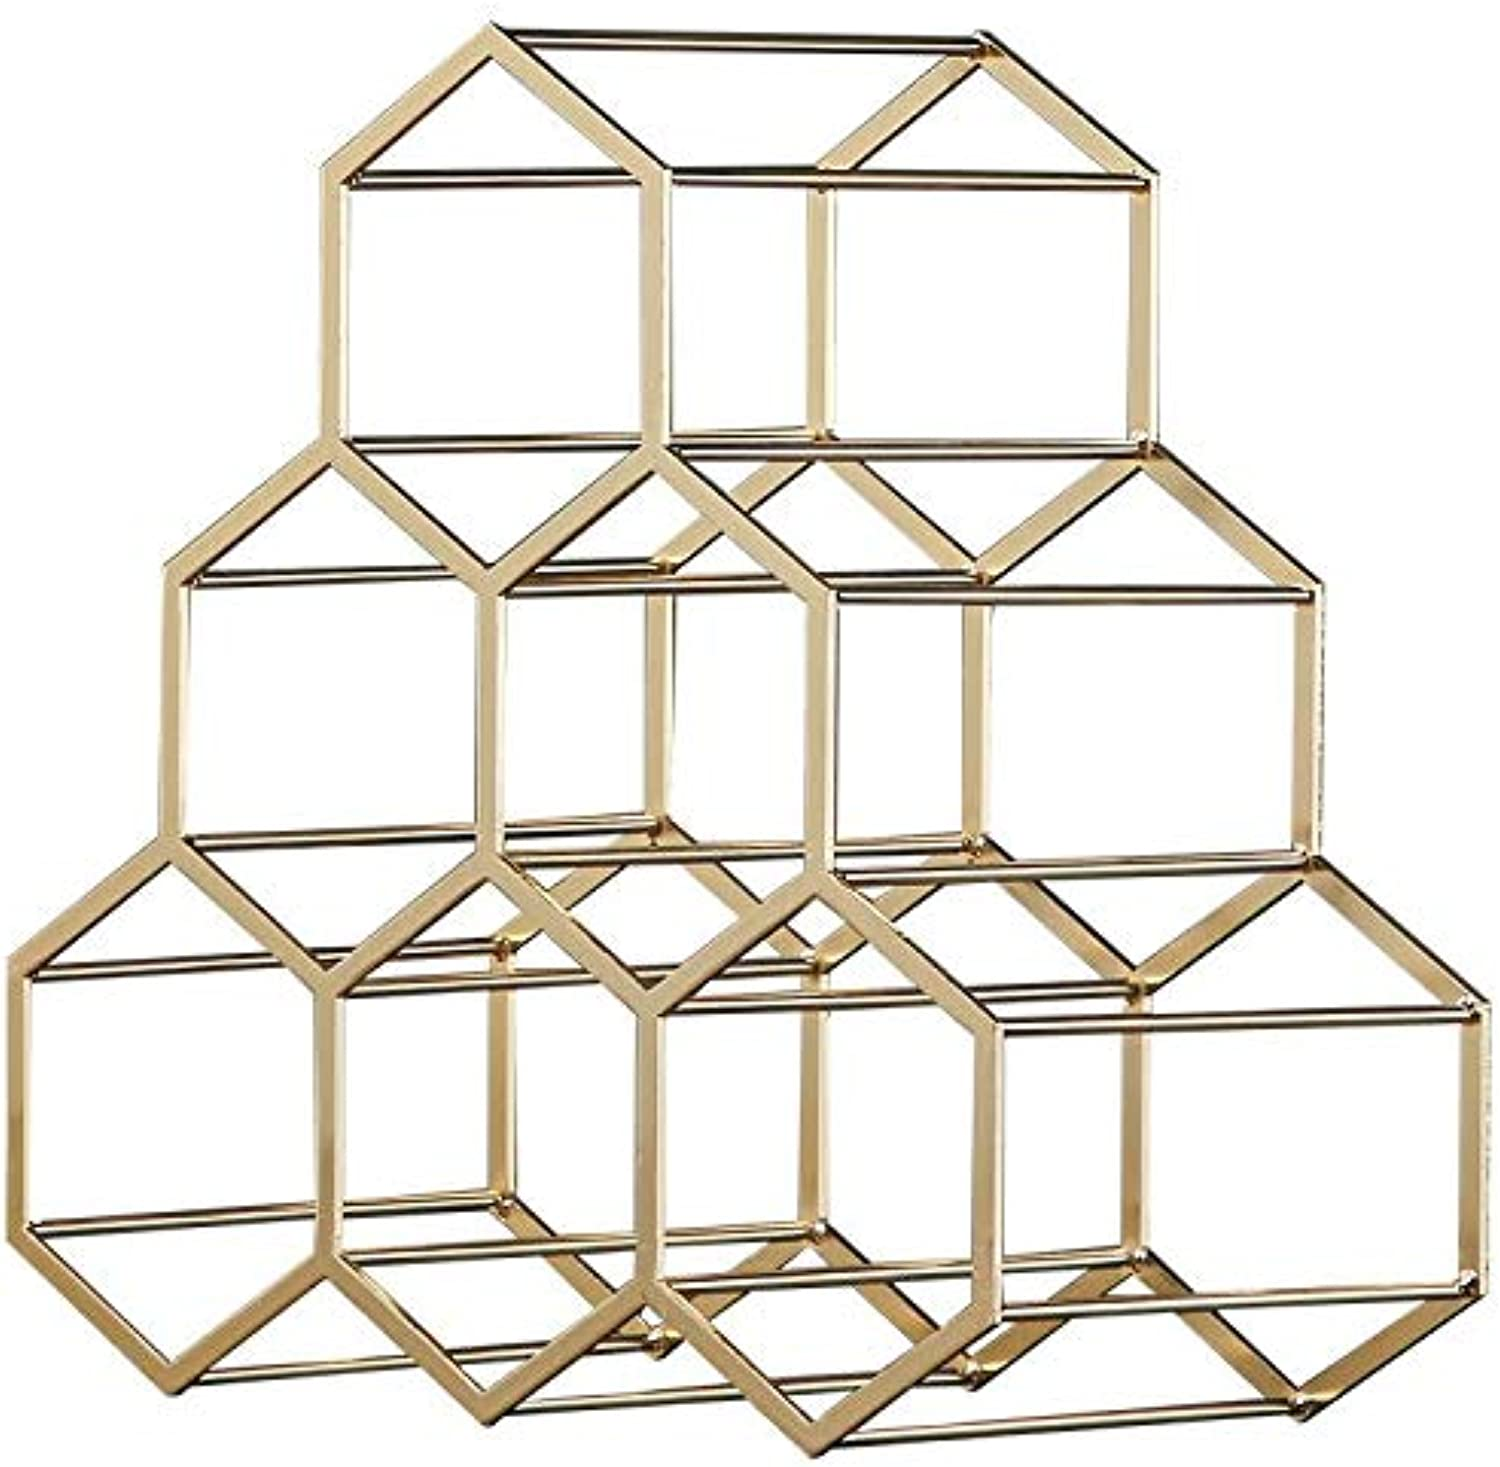 Thirty-seven days Bottles Metal Wine Rack, Countertop Free-Stand Wine Storage Holder, Space Saver Predector for Red & White Wines (gold)